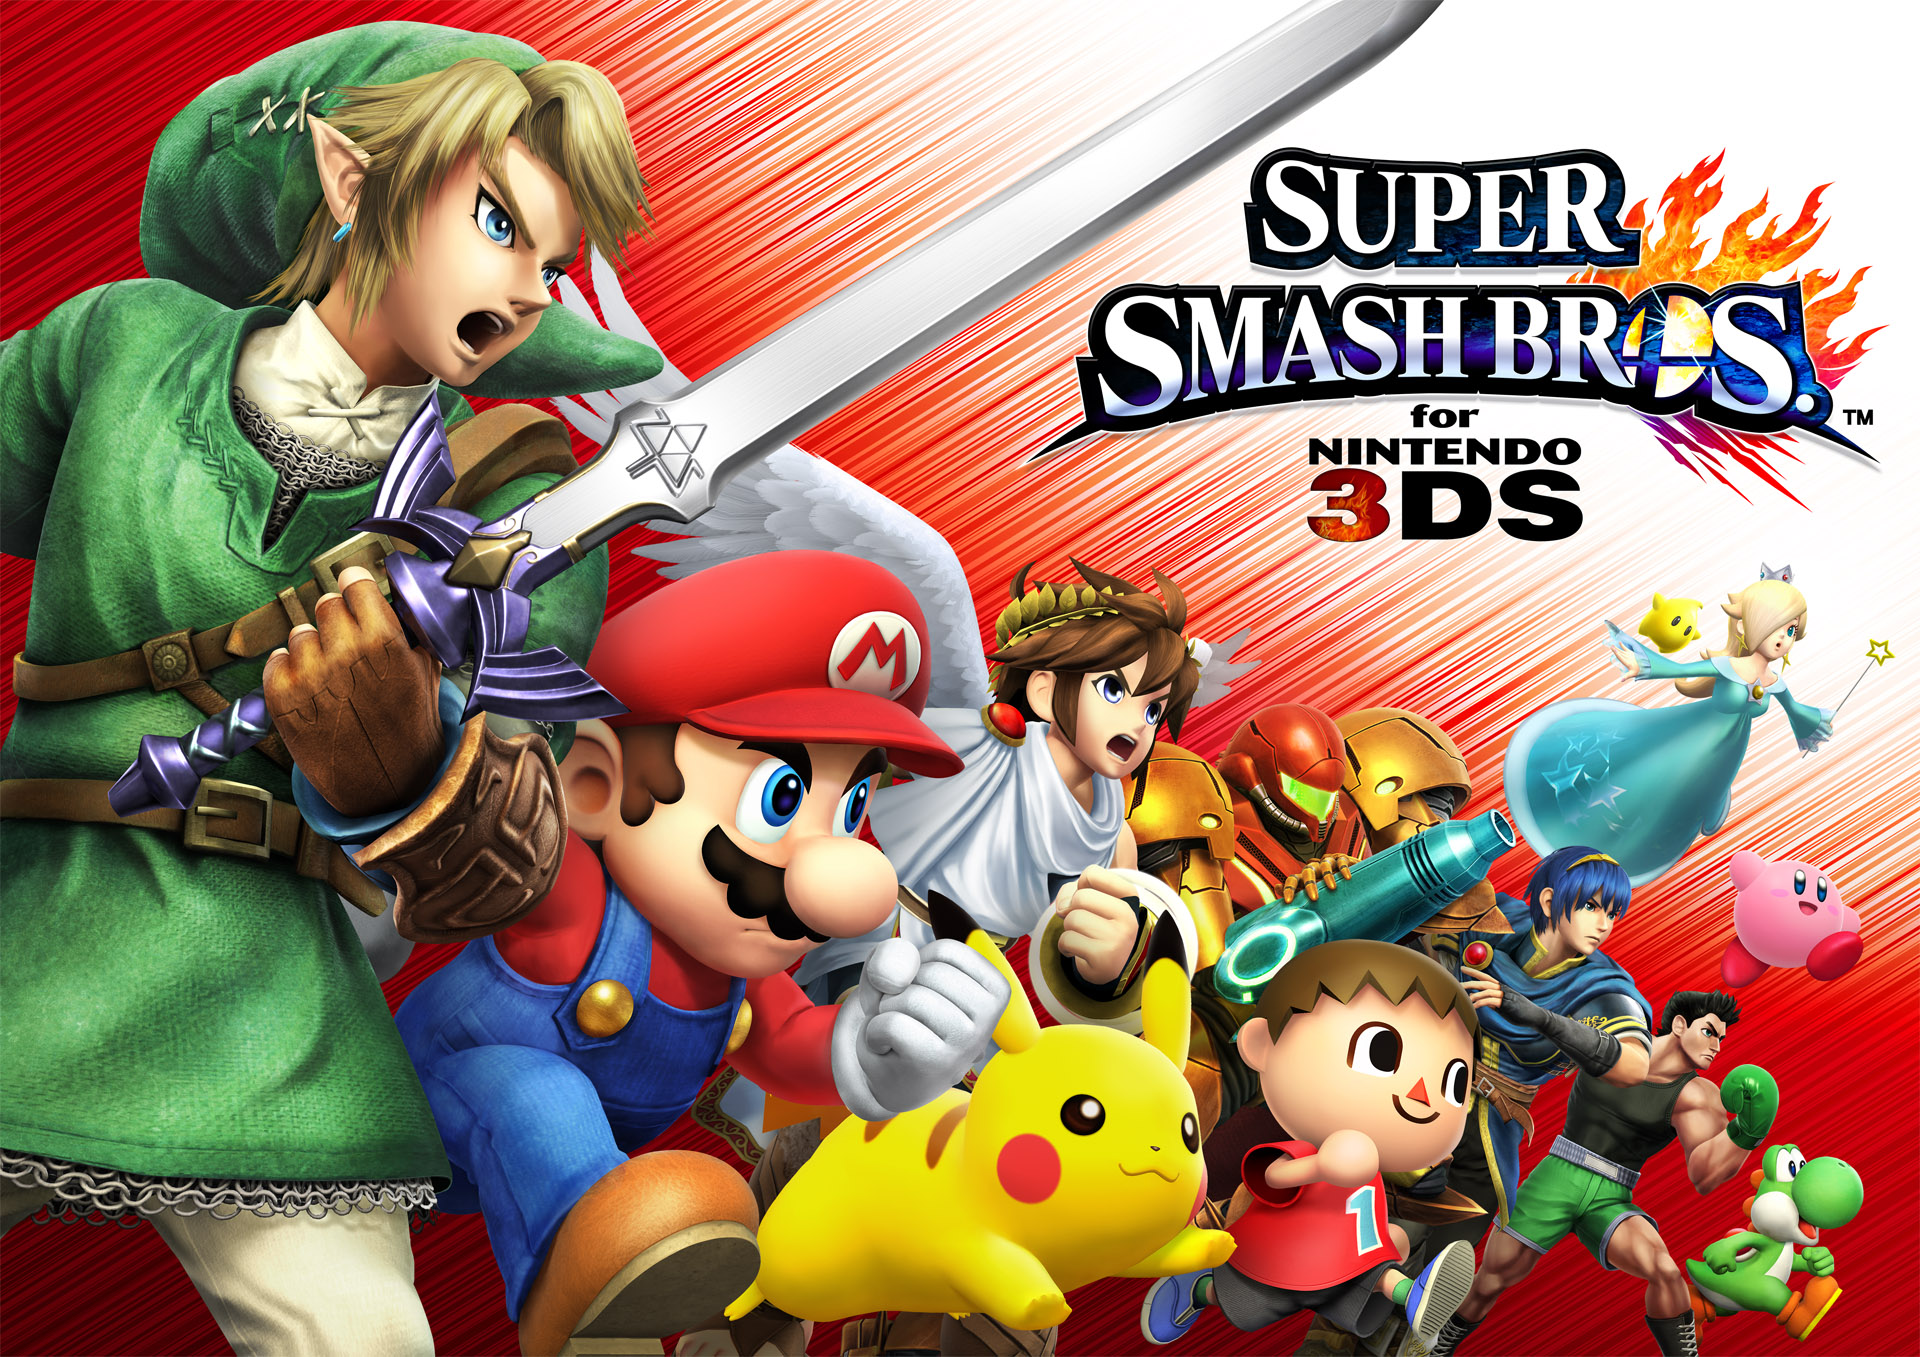 Super Smash Bros. for Nintendo 3DS Guide